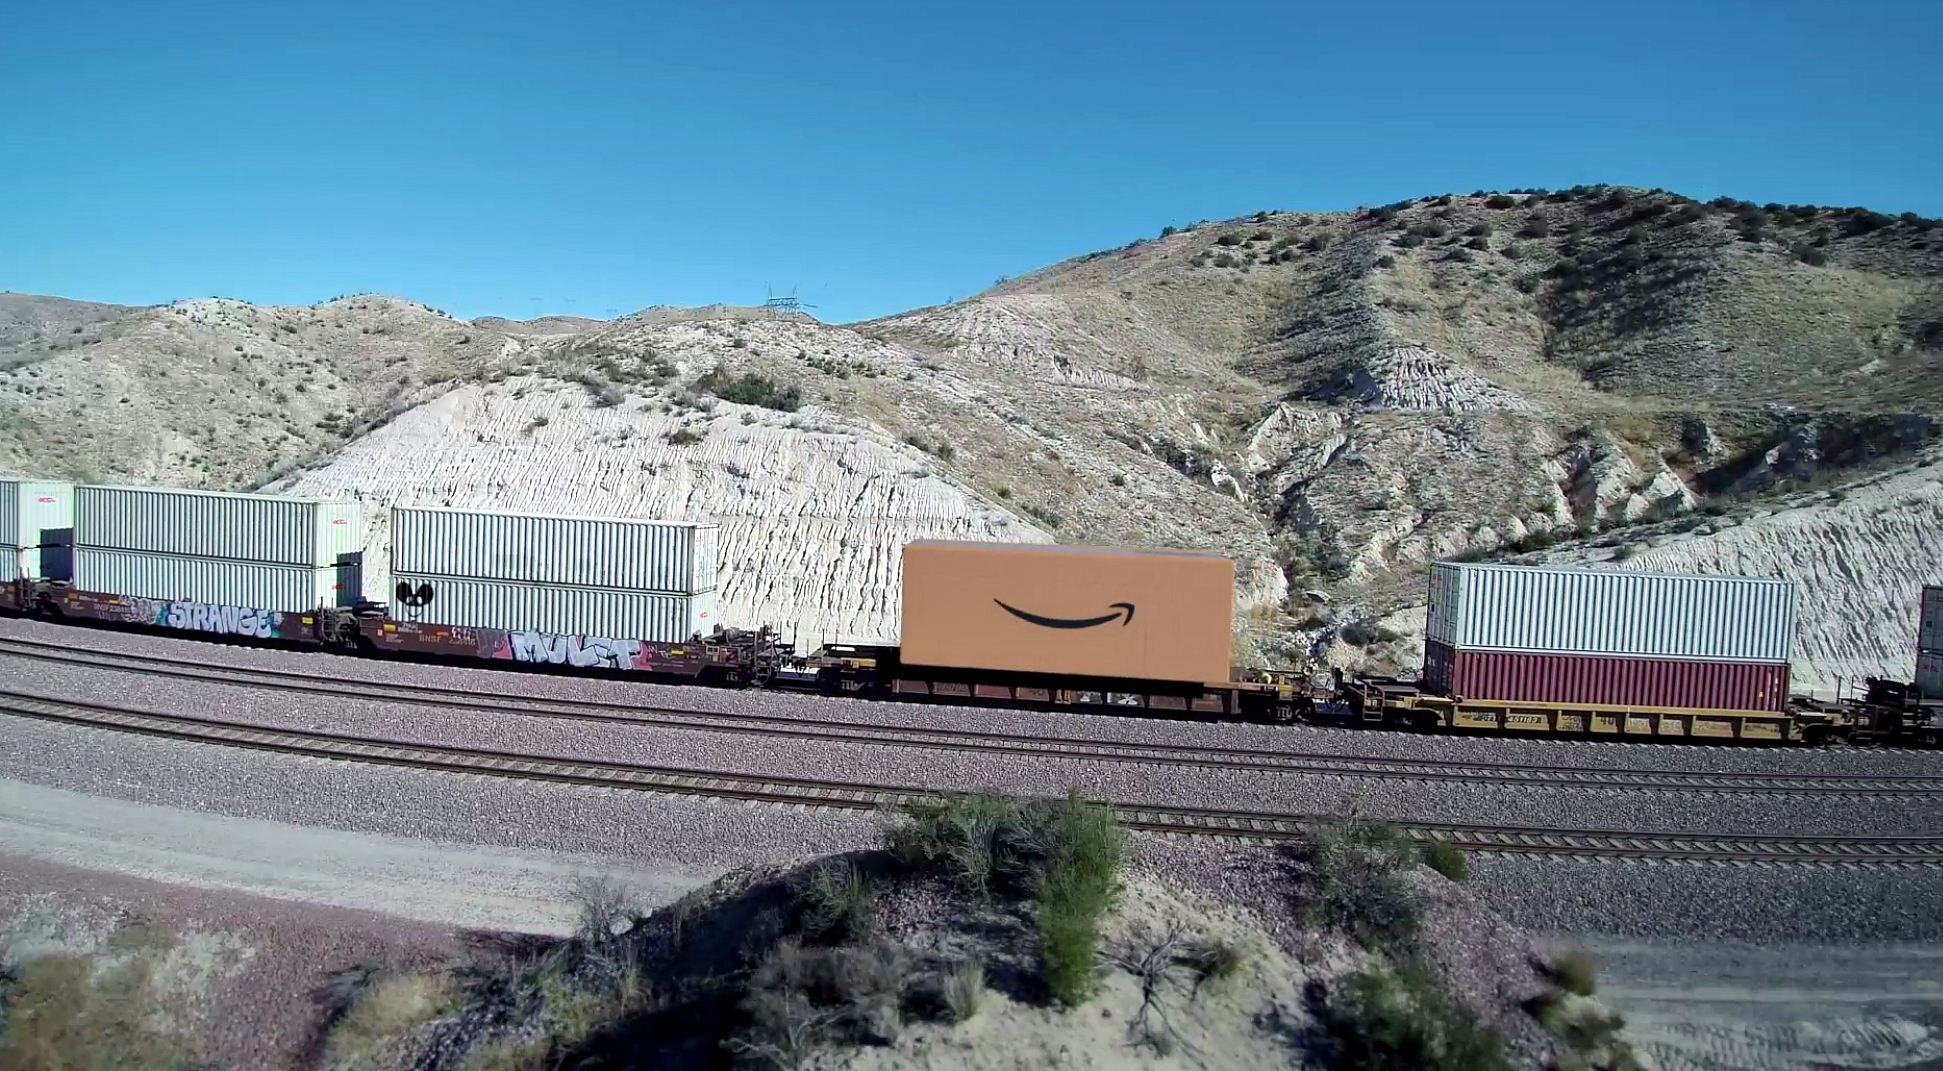 amazon prime day deals are coming! - Prime Smile Boxes like this one on a train coming to a few locations